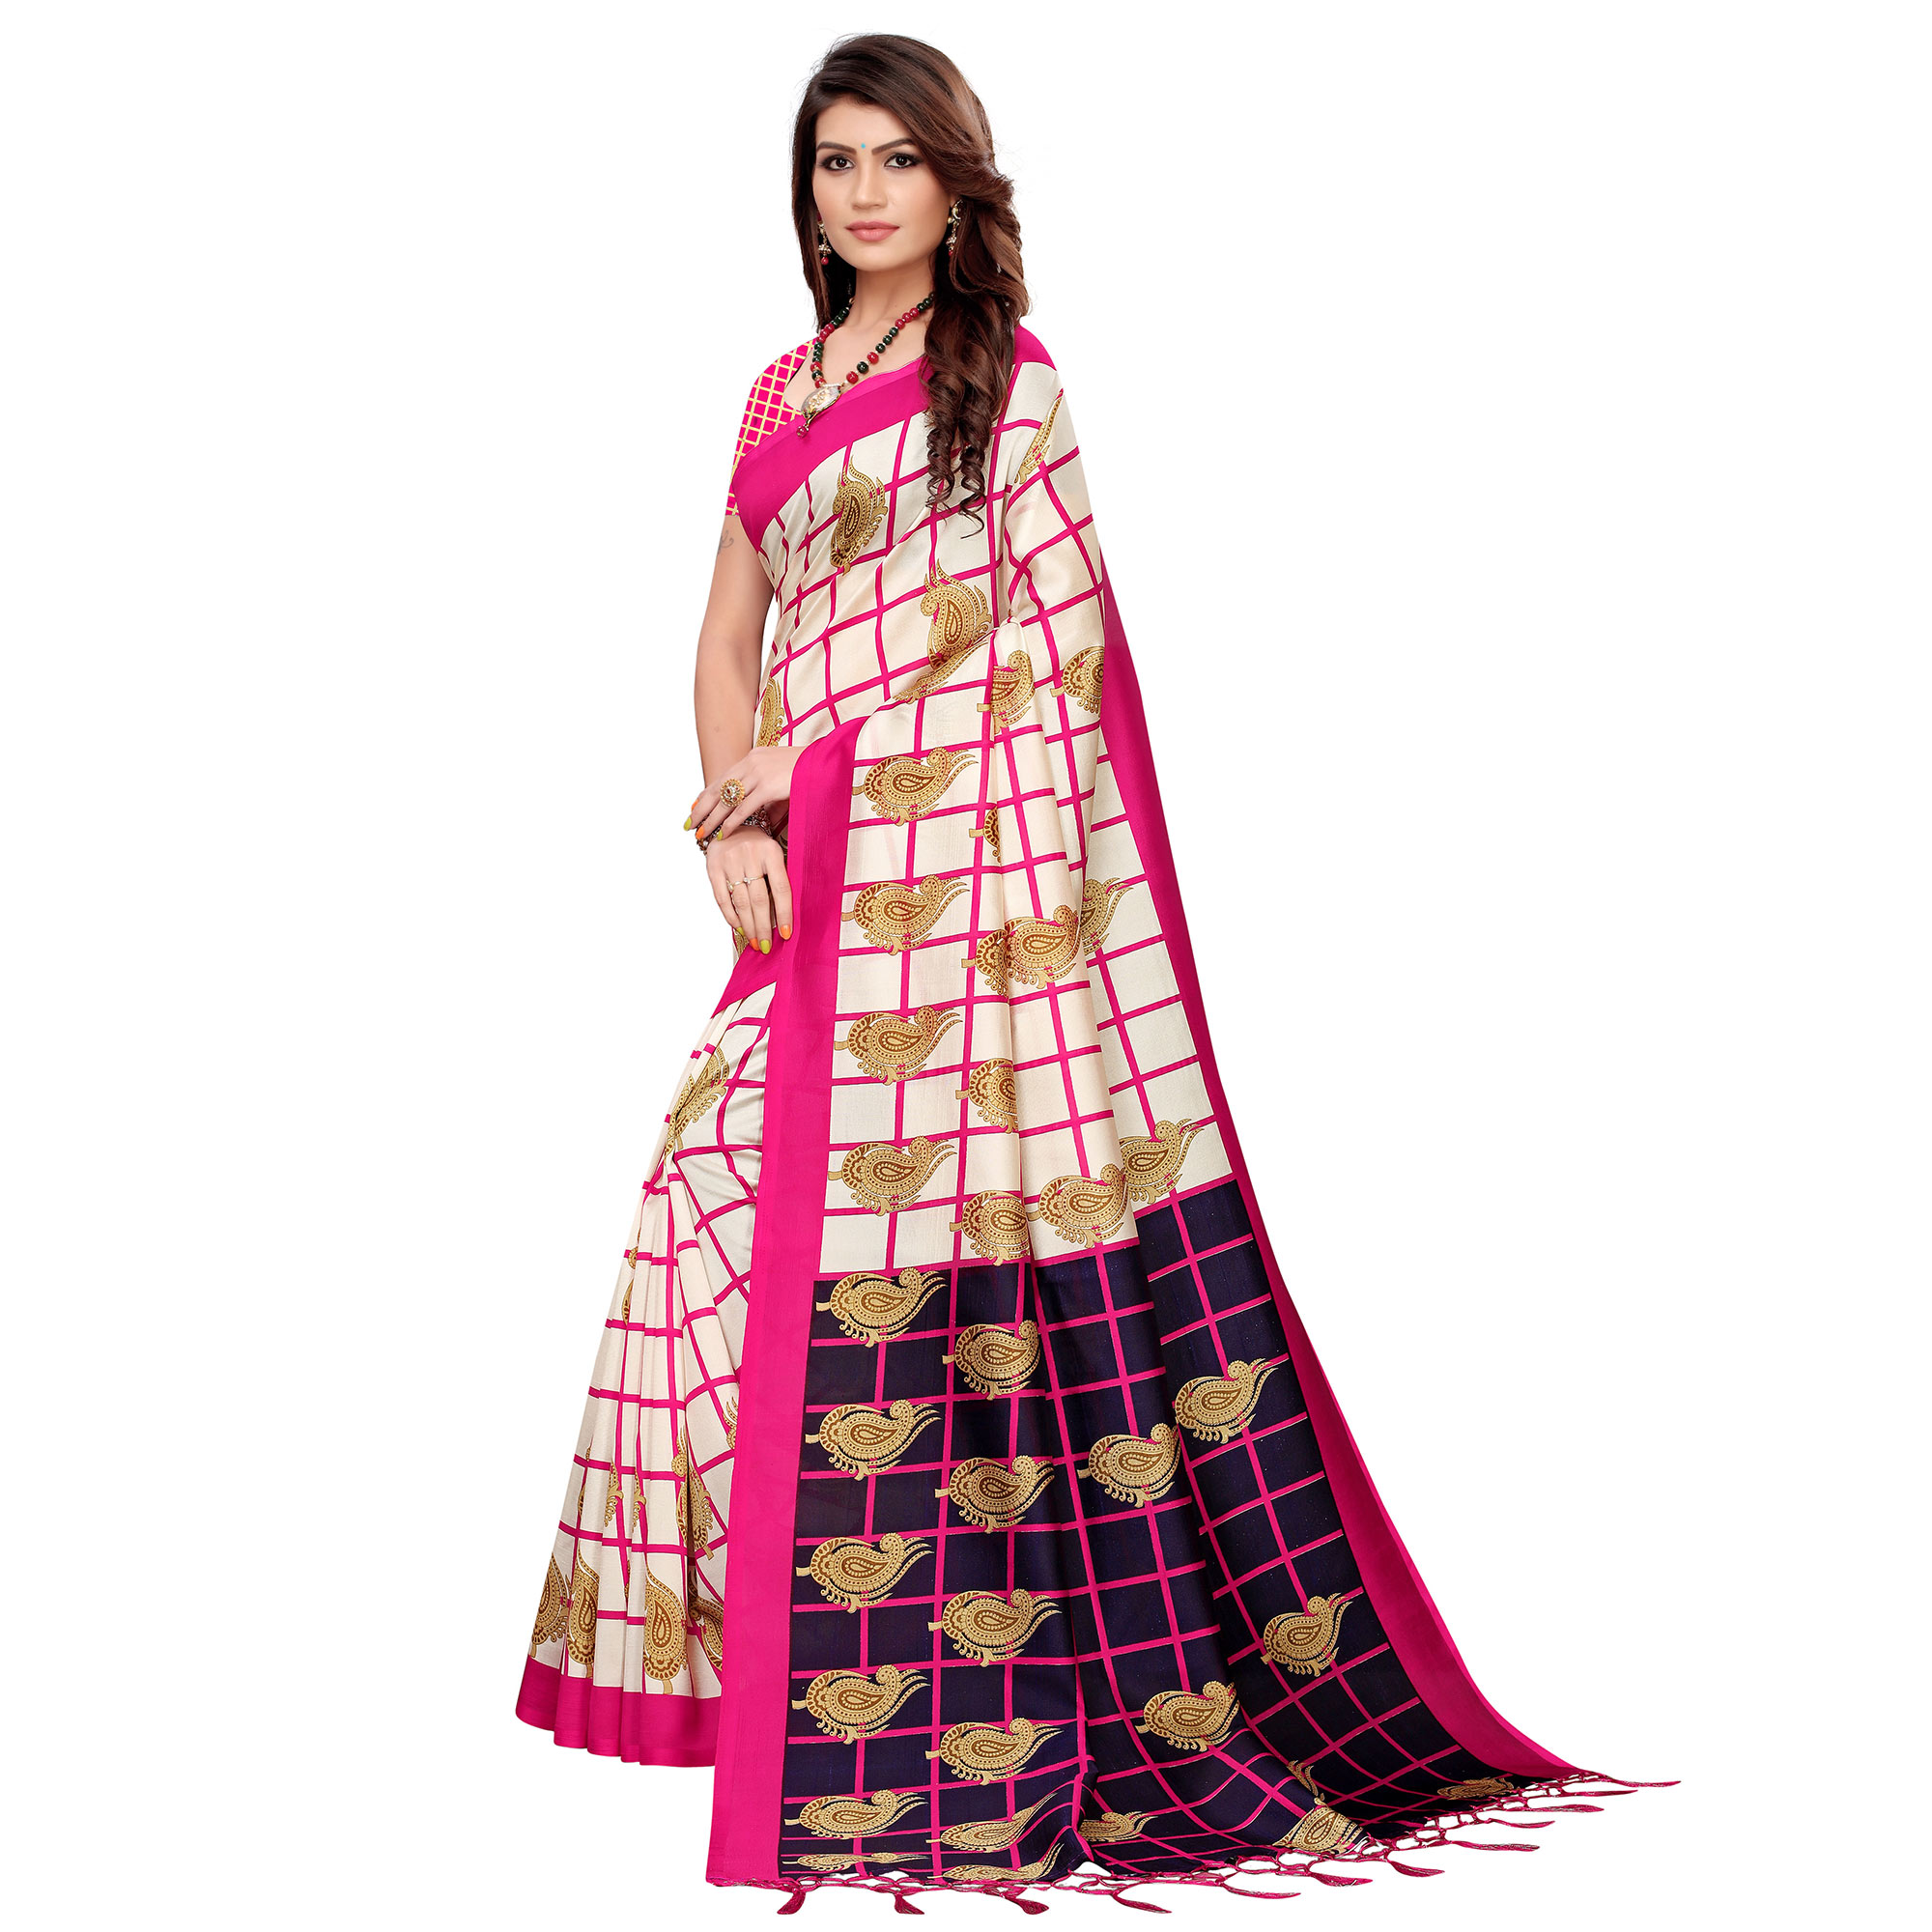 Charming Off White-Pink Colored Festive Wear Printed Art Silk Saree